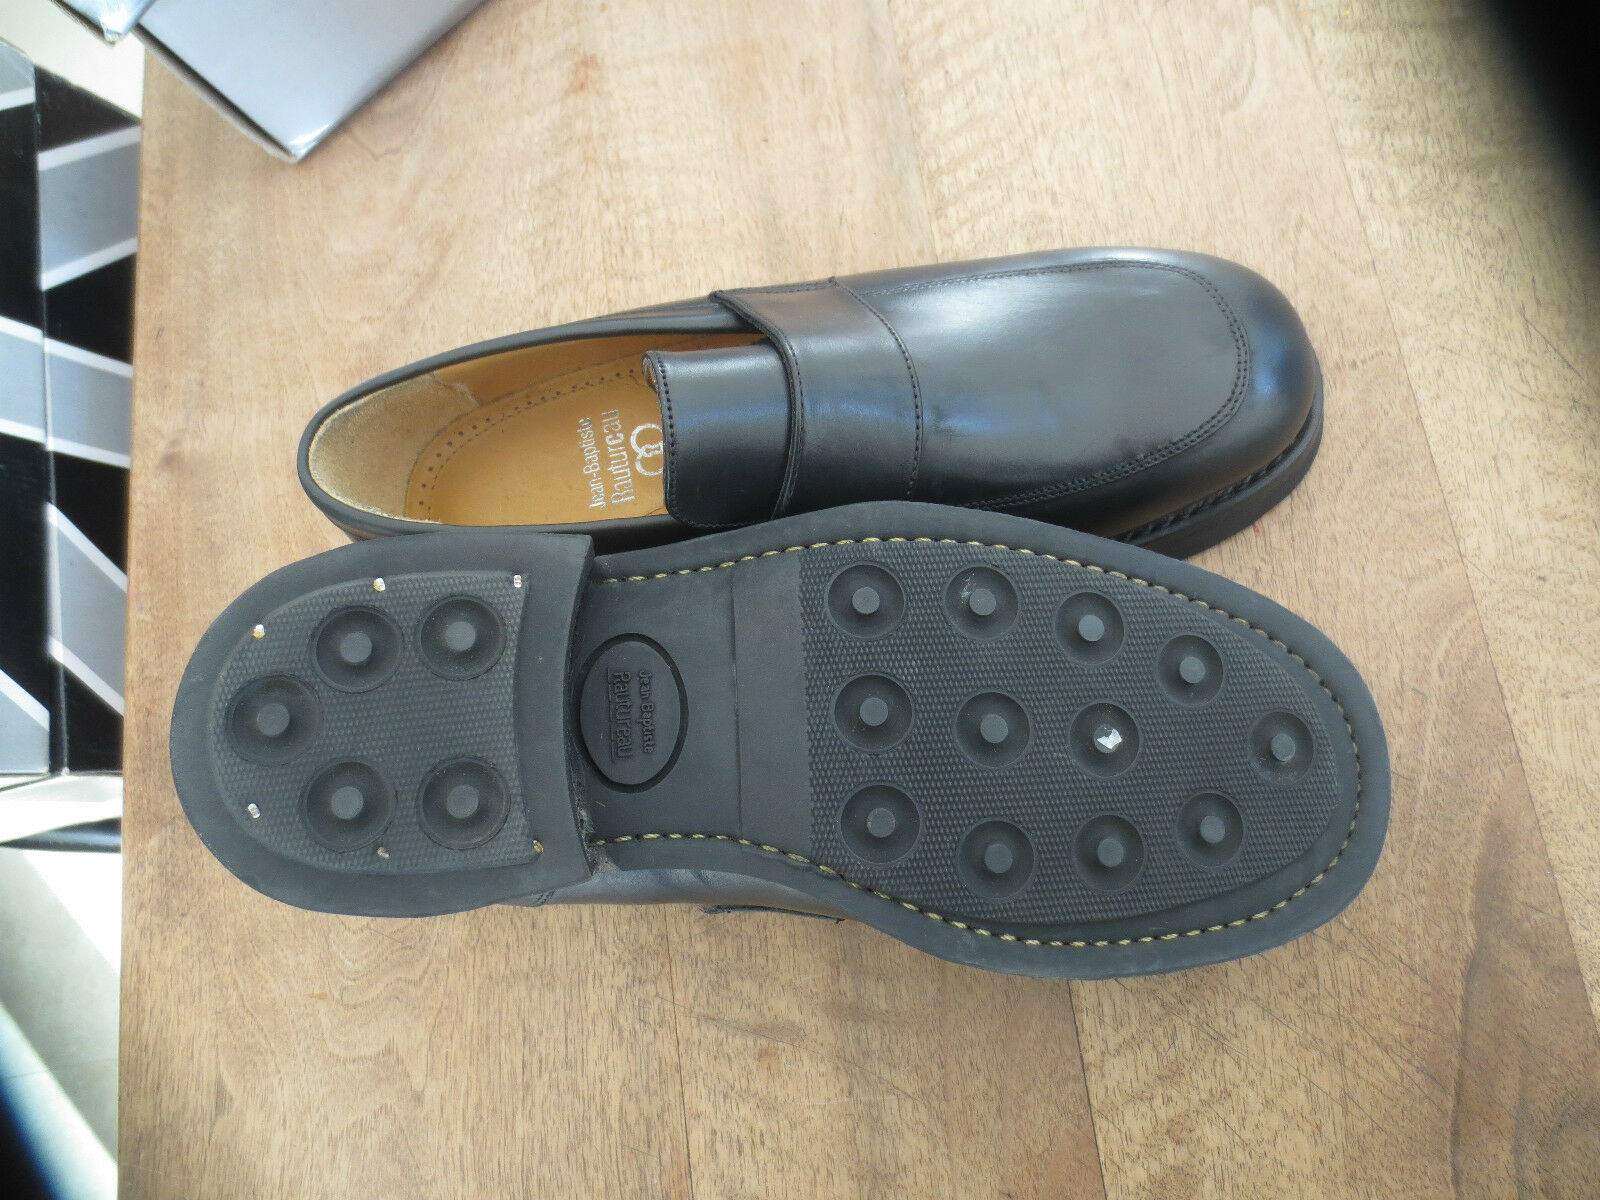 RAUTUREAU RAUTUREAU RAUTUREAU Duke loafer dakar nero NEUF Pointure Grand 39 | Il colore è molto evidente